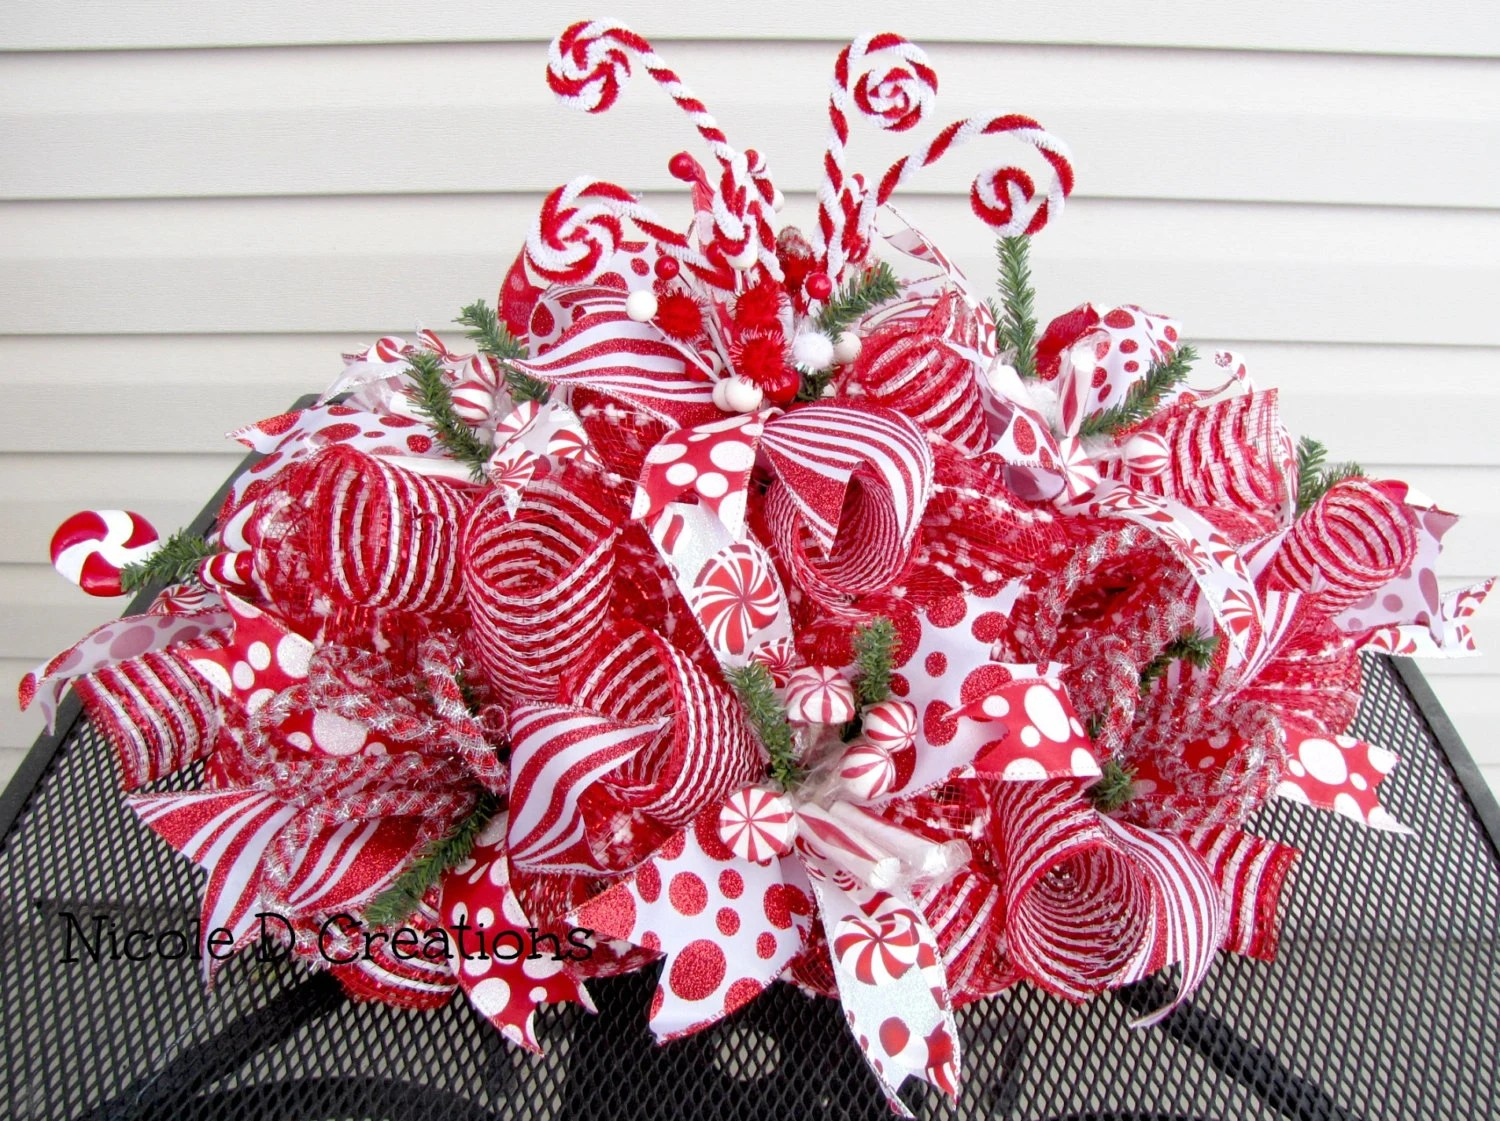 Christmas Centerpiece Red And White Candy Cane Holidays Home